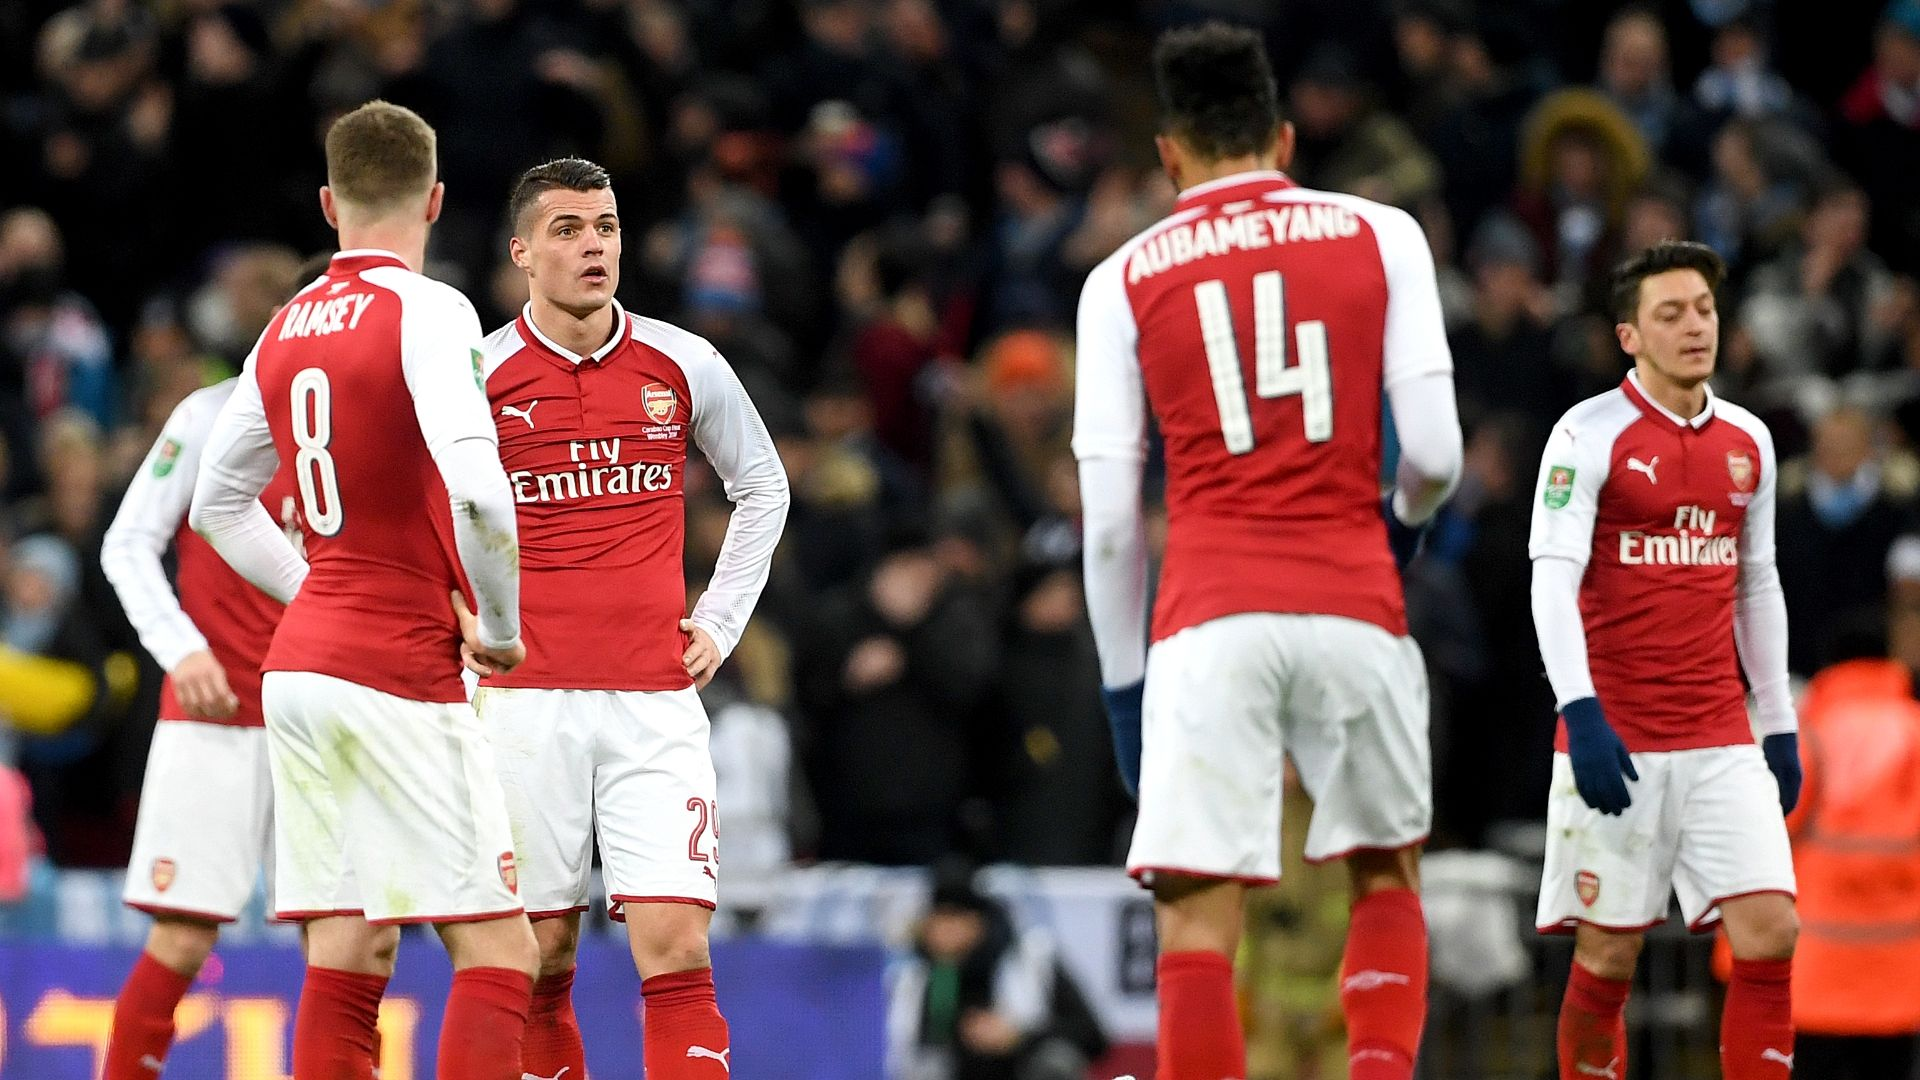 Neville rips 'spineless' Arsenal trio after loss